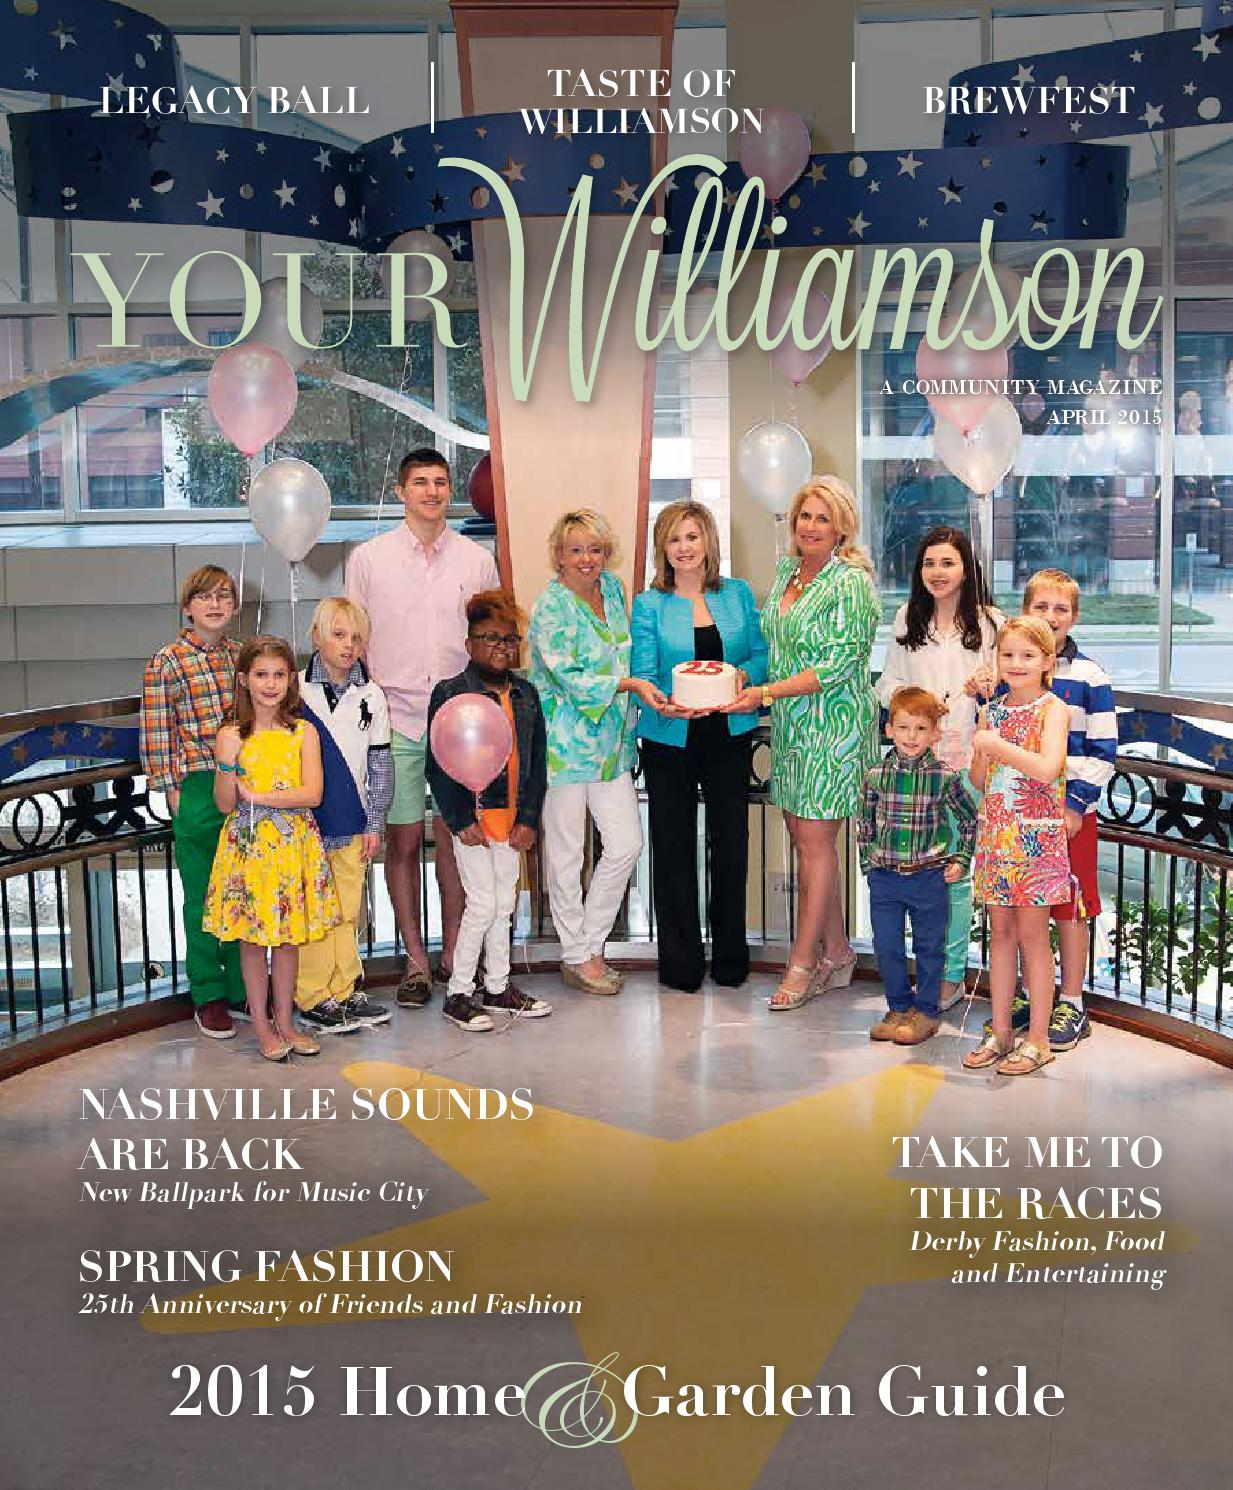 April 2015 By YOUR Williamson